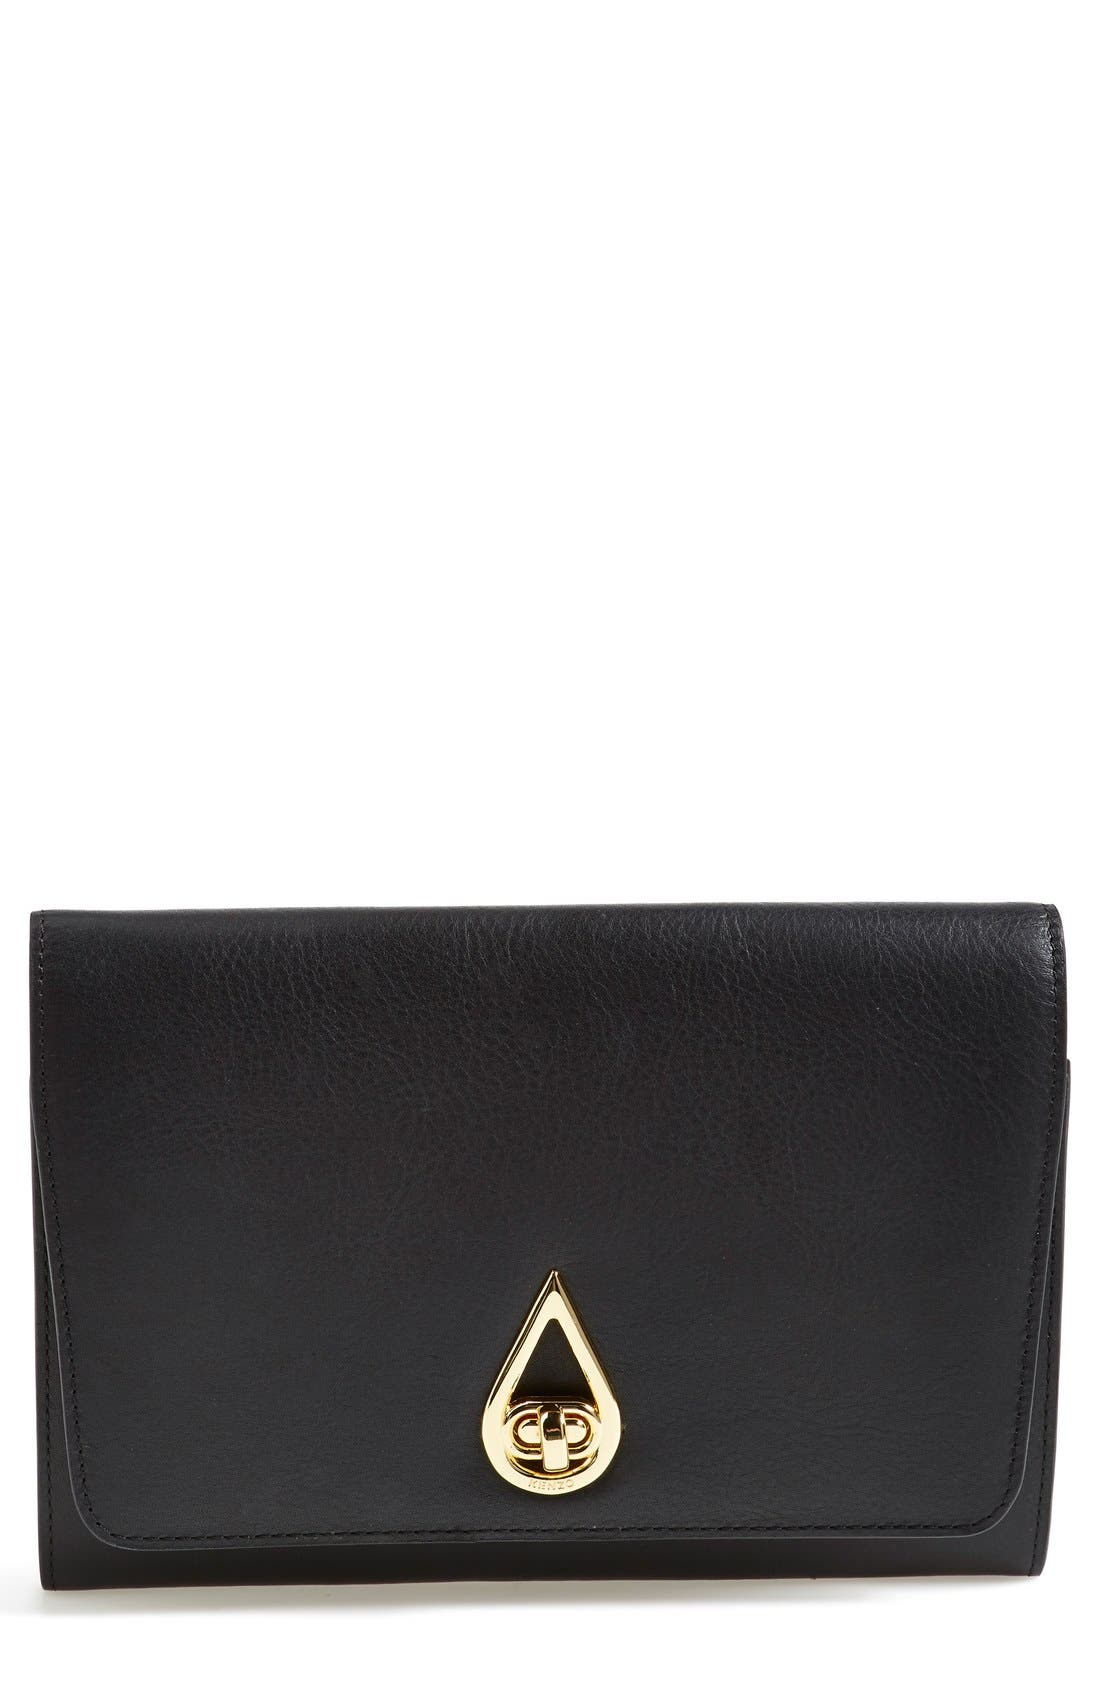 Alternate Image 1 Selected - KENZO 'Raindrop' Leather Clutch